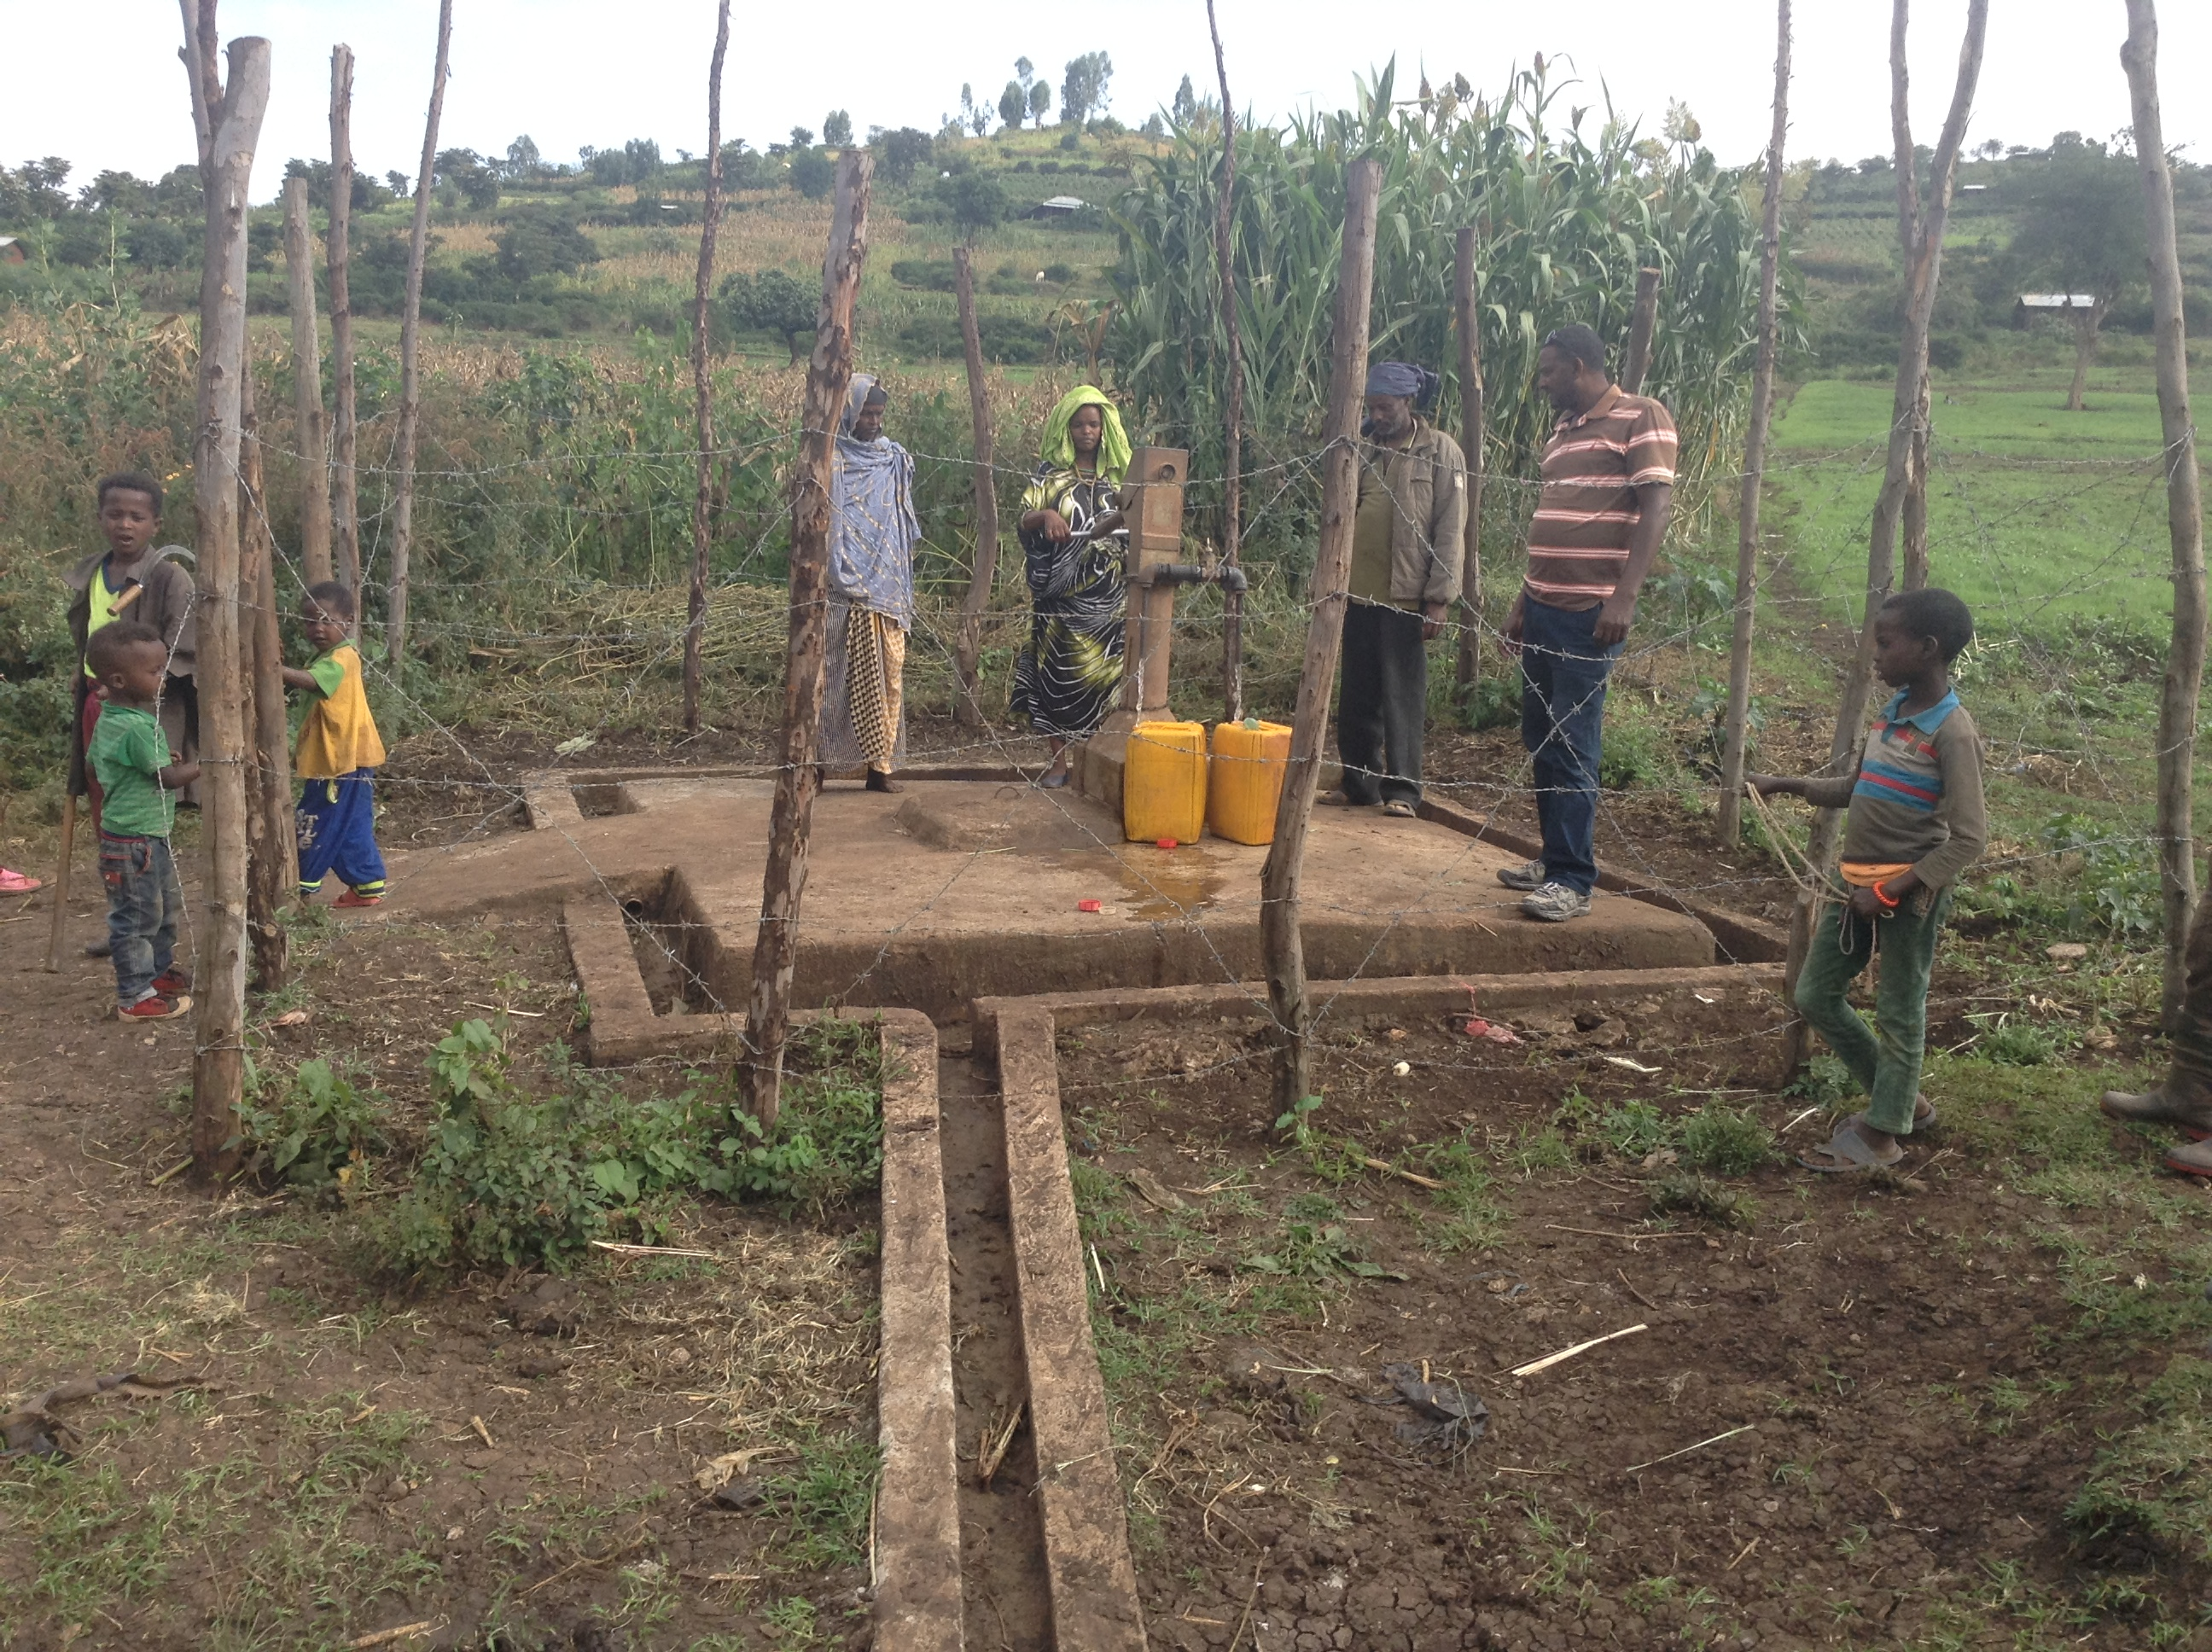 Community members examine their hand-dug well. Photo by Gutu Kenesa for CRS